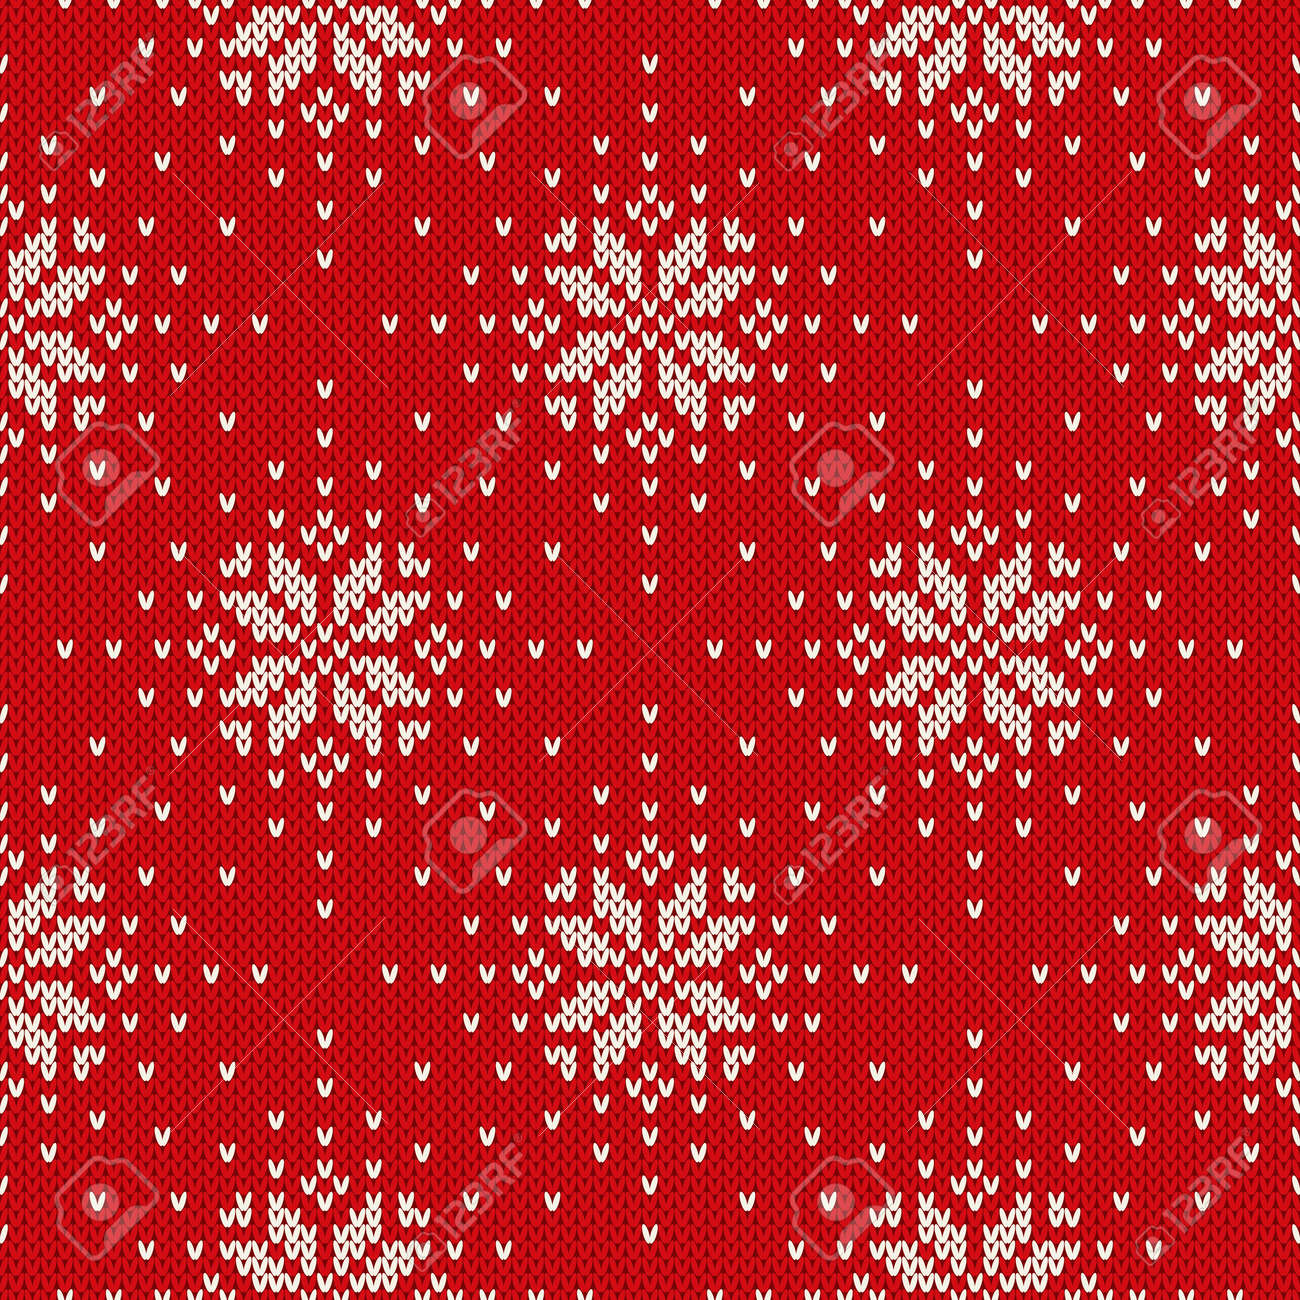 Winter Holiday Knitted Pattern With Snowflakes. Seamless Vector ...